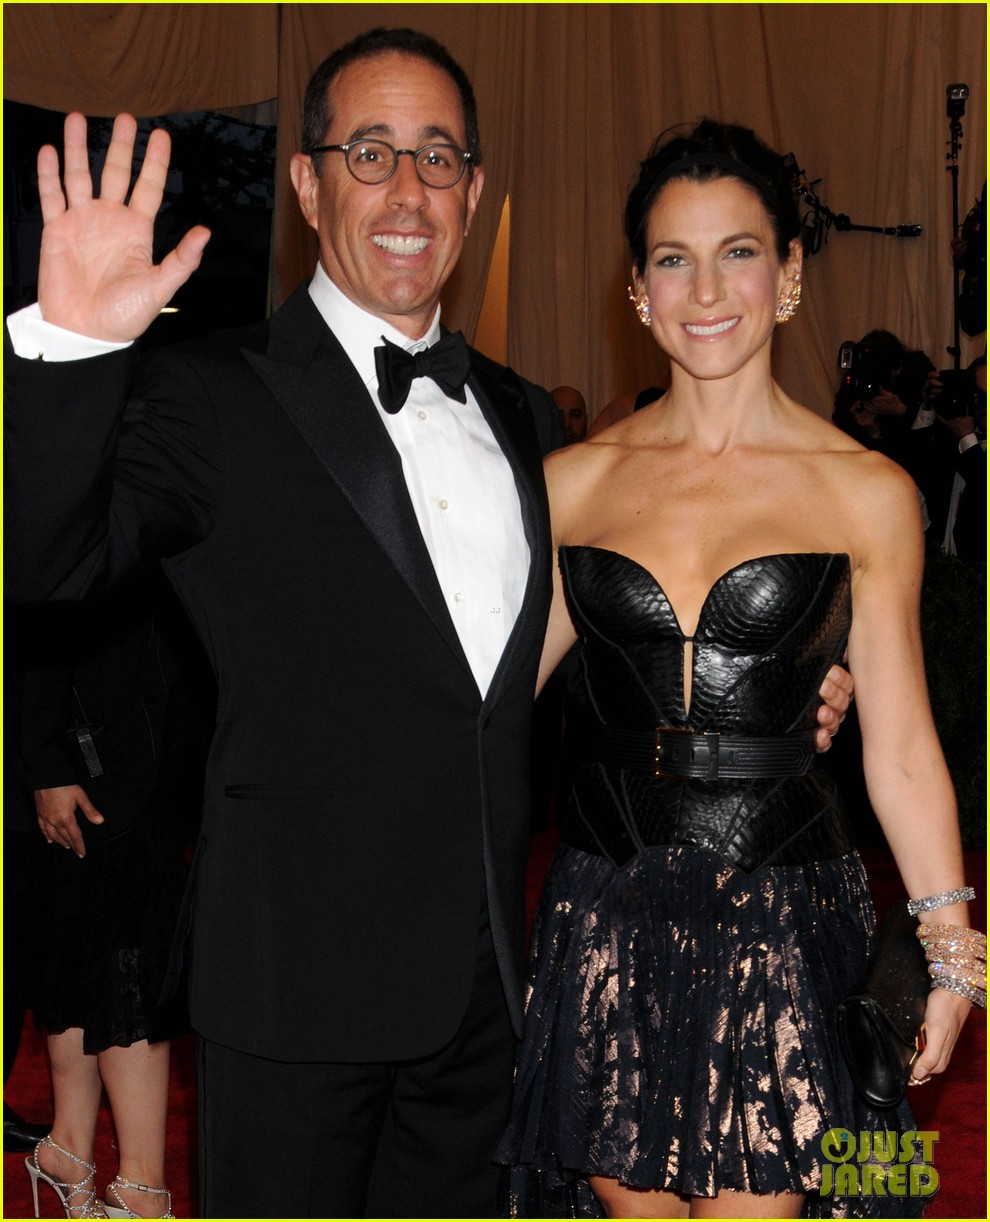 Jerry seinfeld dating girl who looked like him